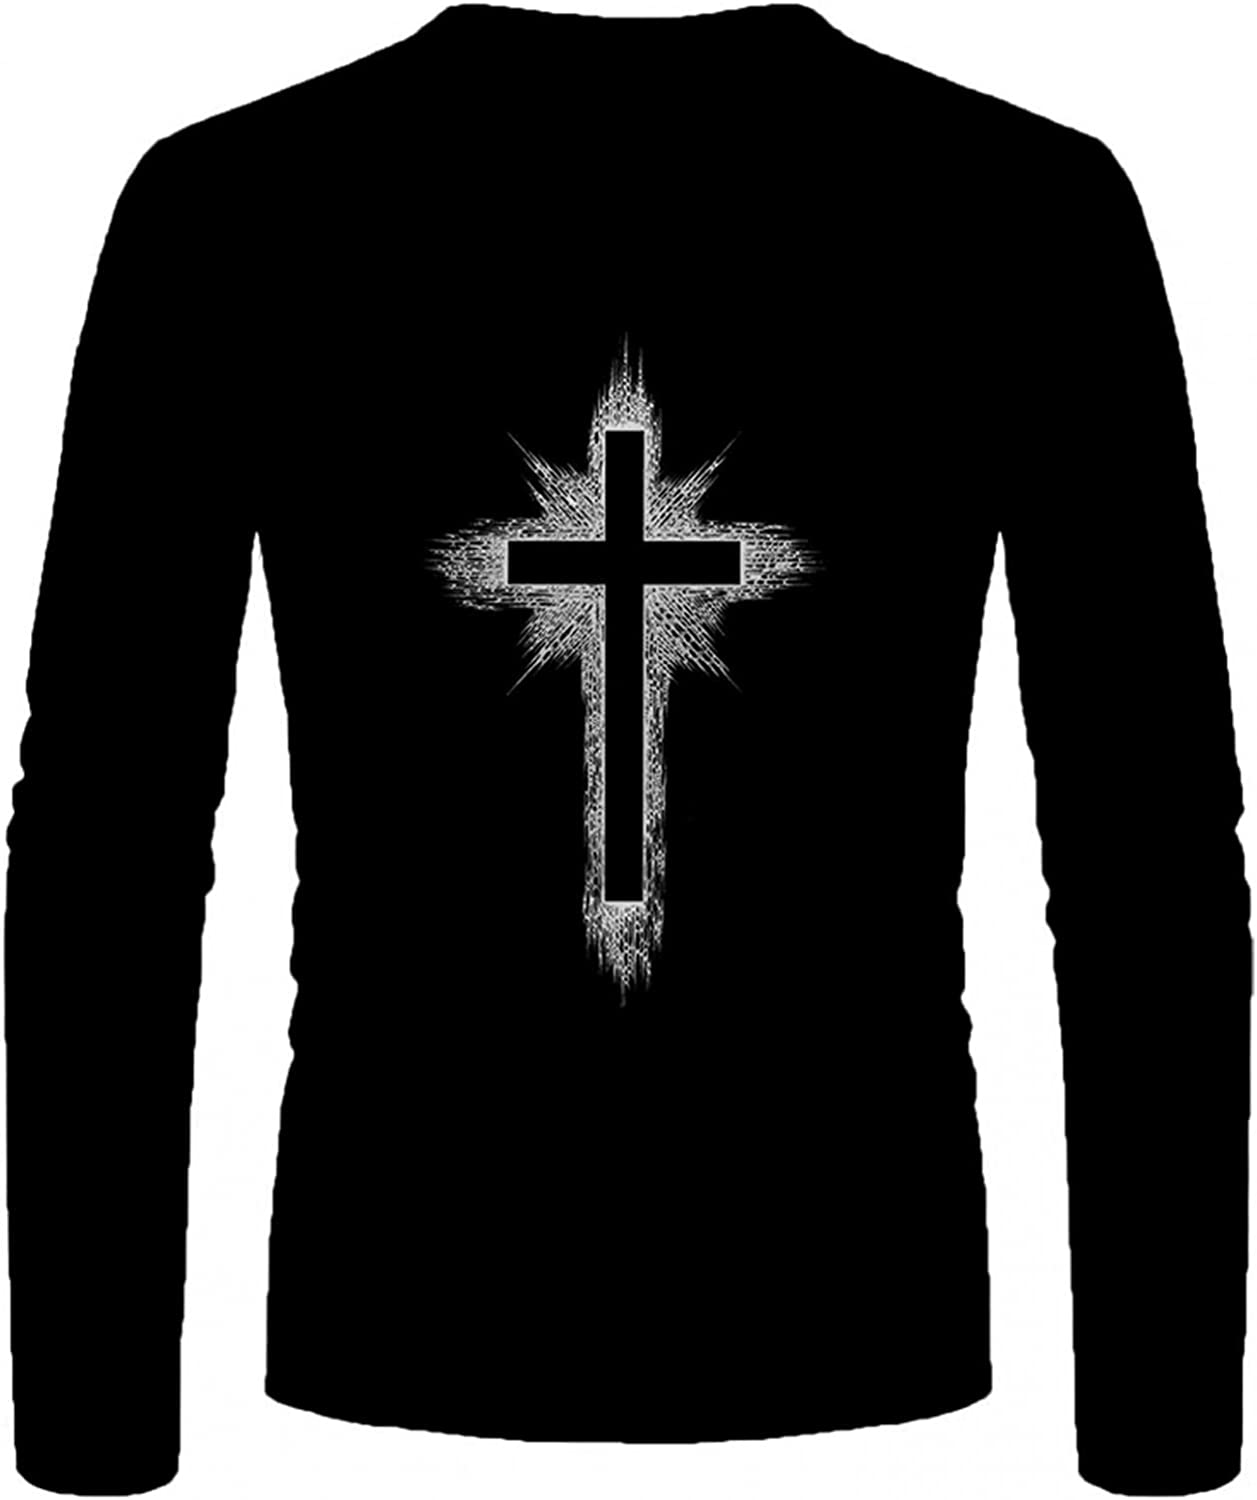 Aayomet Tee Shirts for Men Fashion Graphic Printed Tops Casual Athletic Cozy Long Sleeve Pullover Shirts